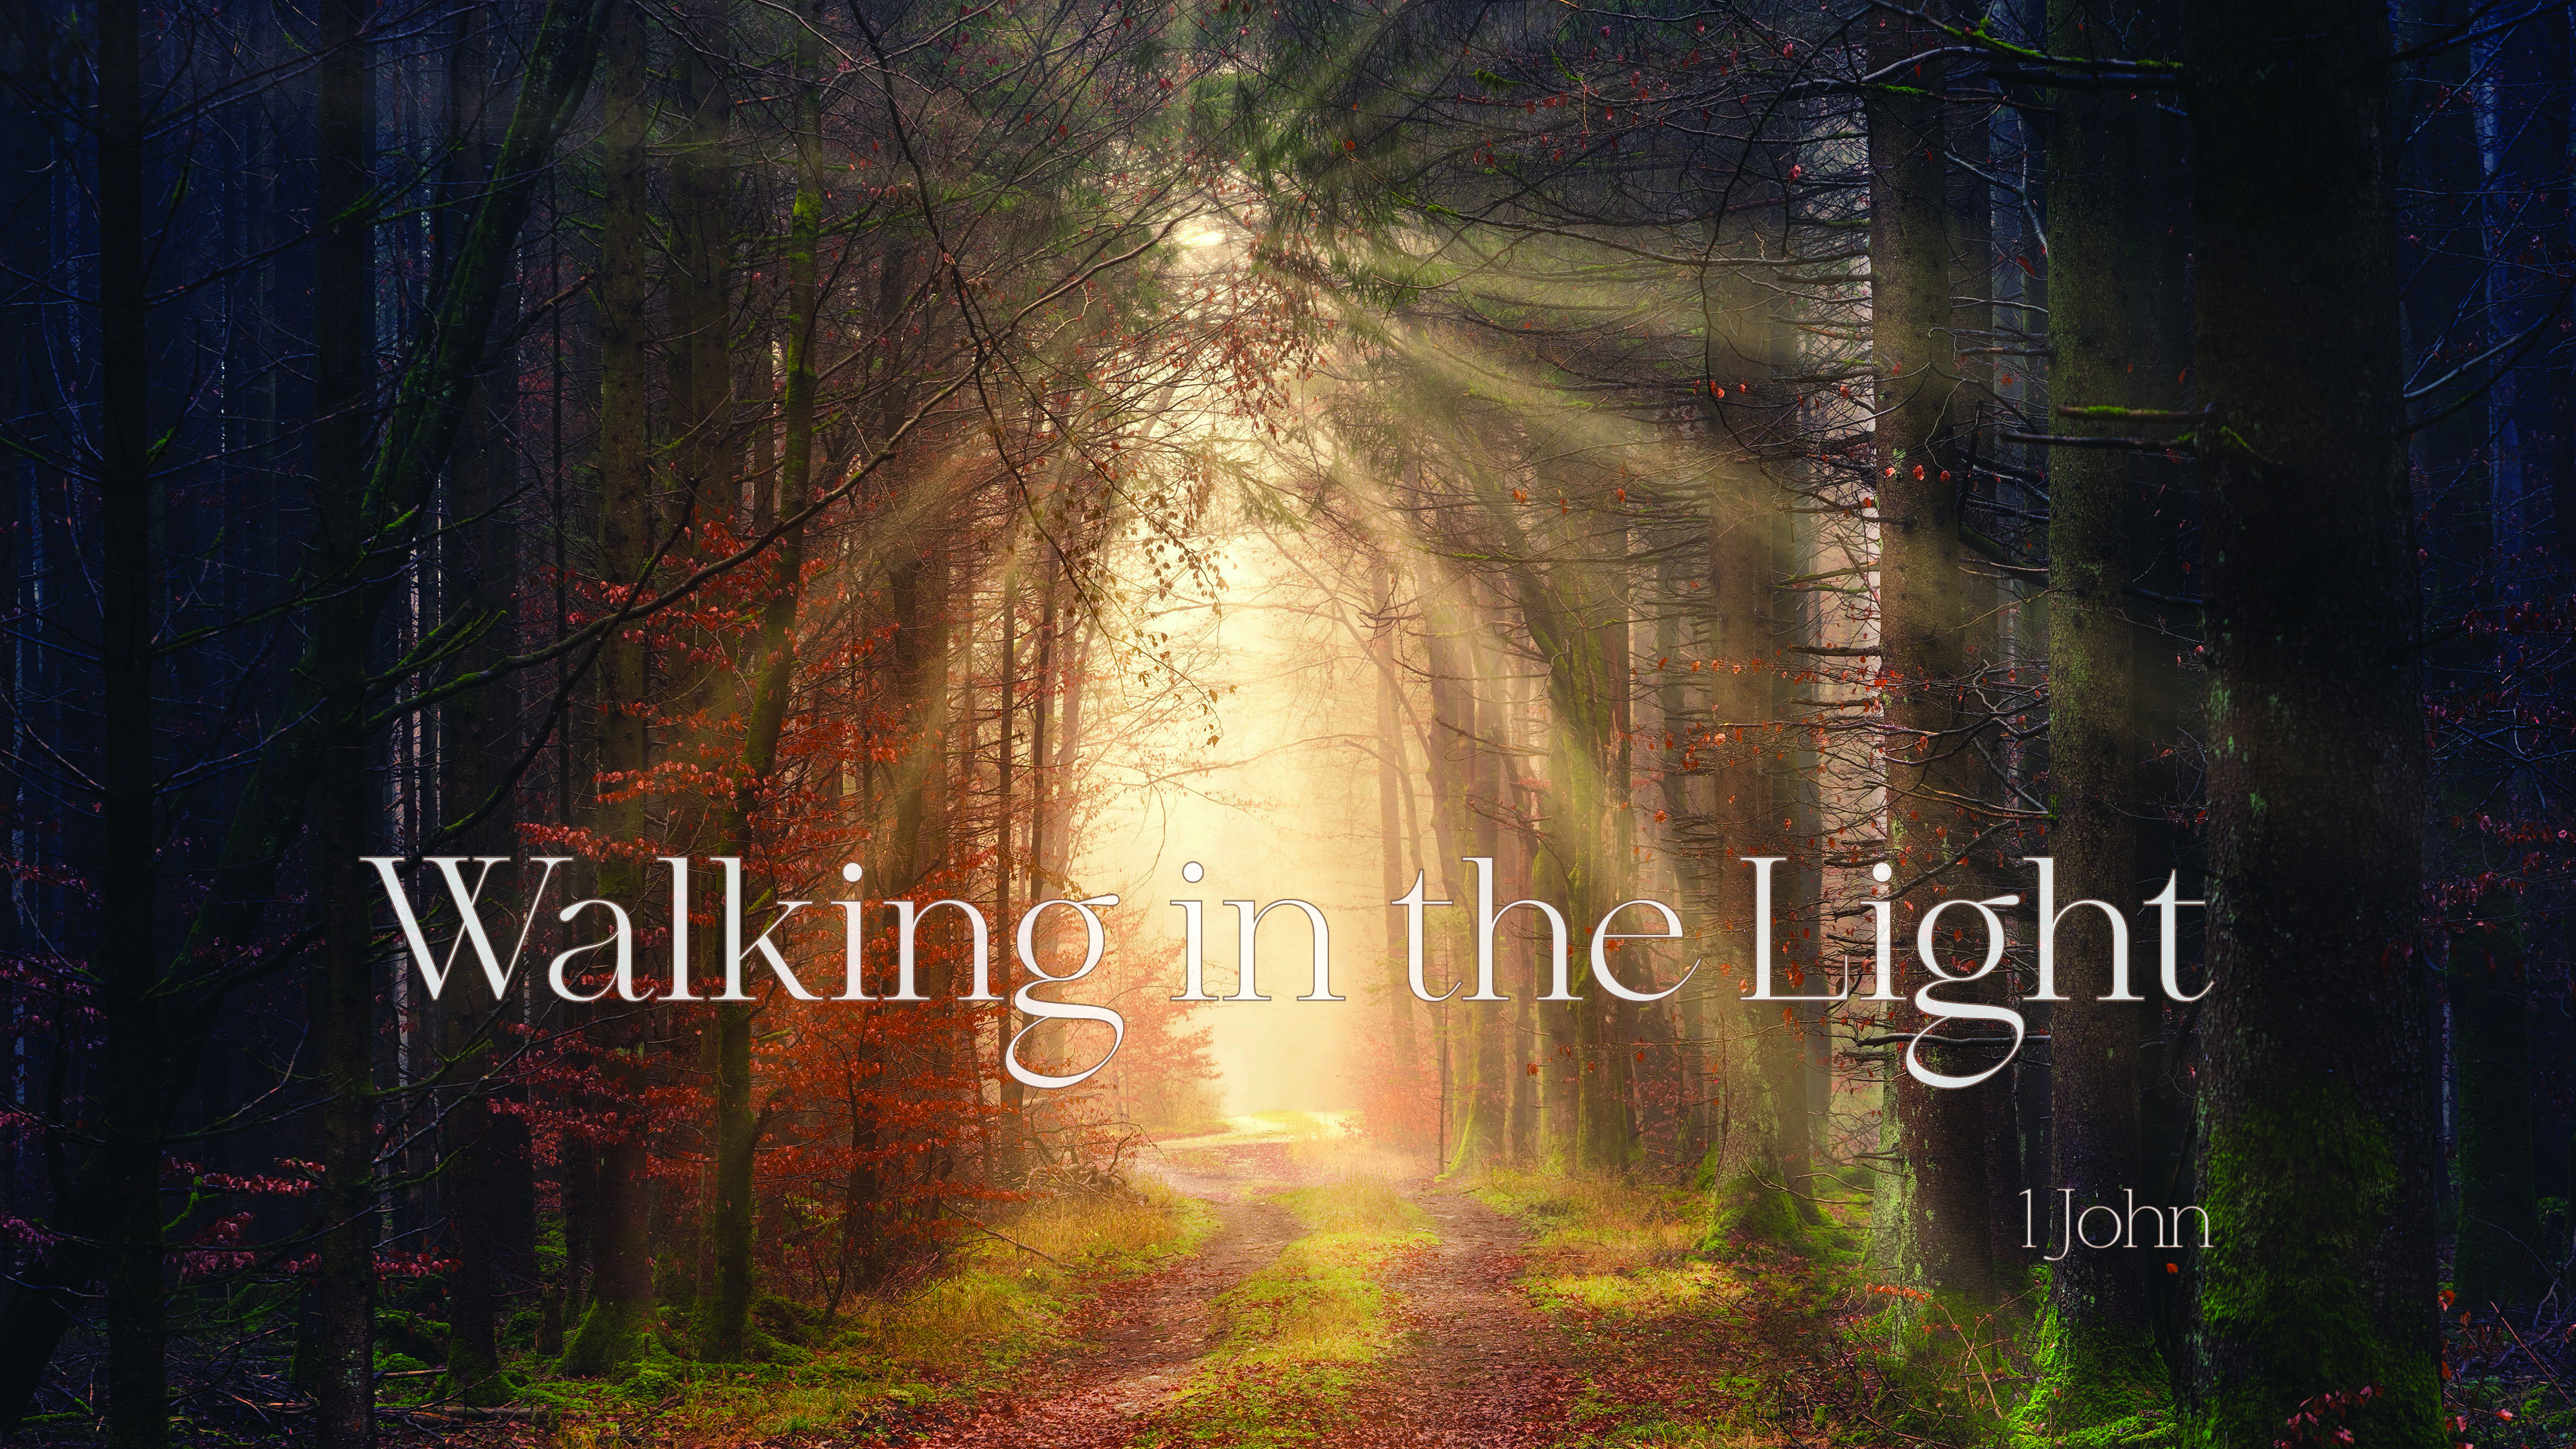 Walking in the Light - A Loving Christian